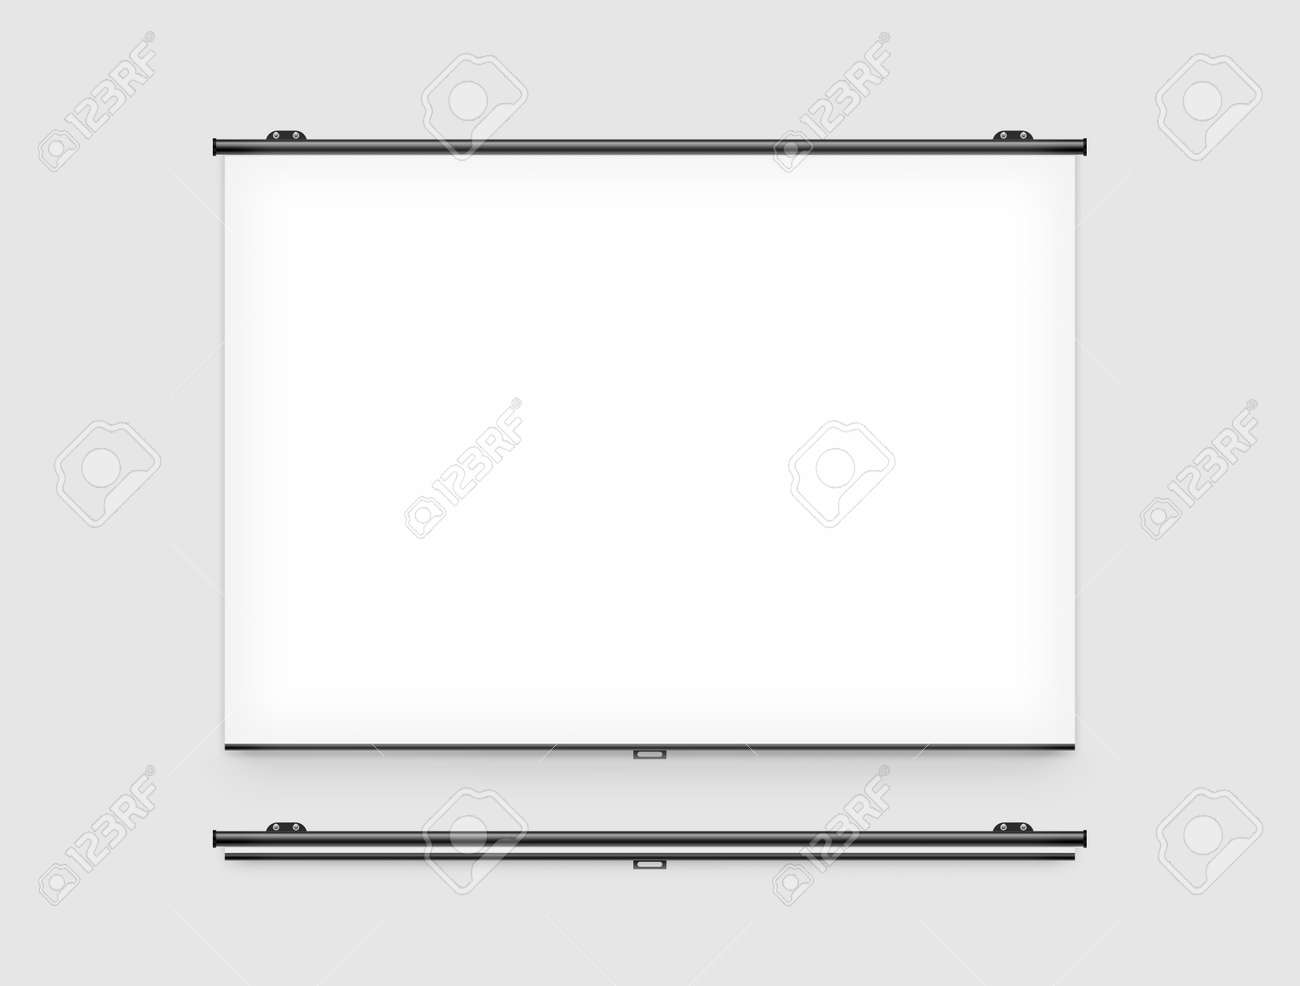 Blank projector screen mockup on the wall  Projector display